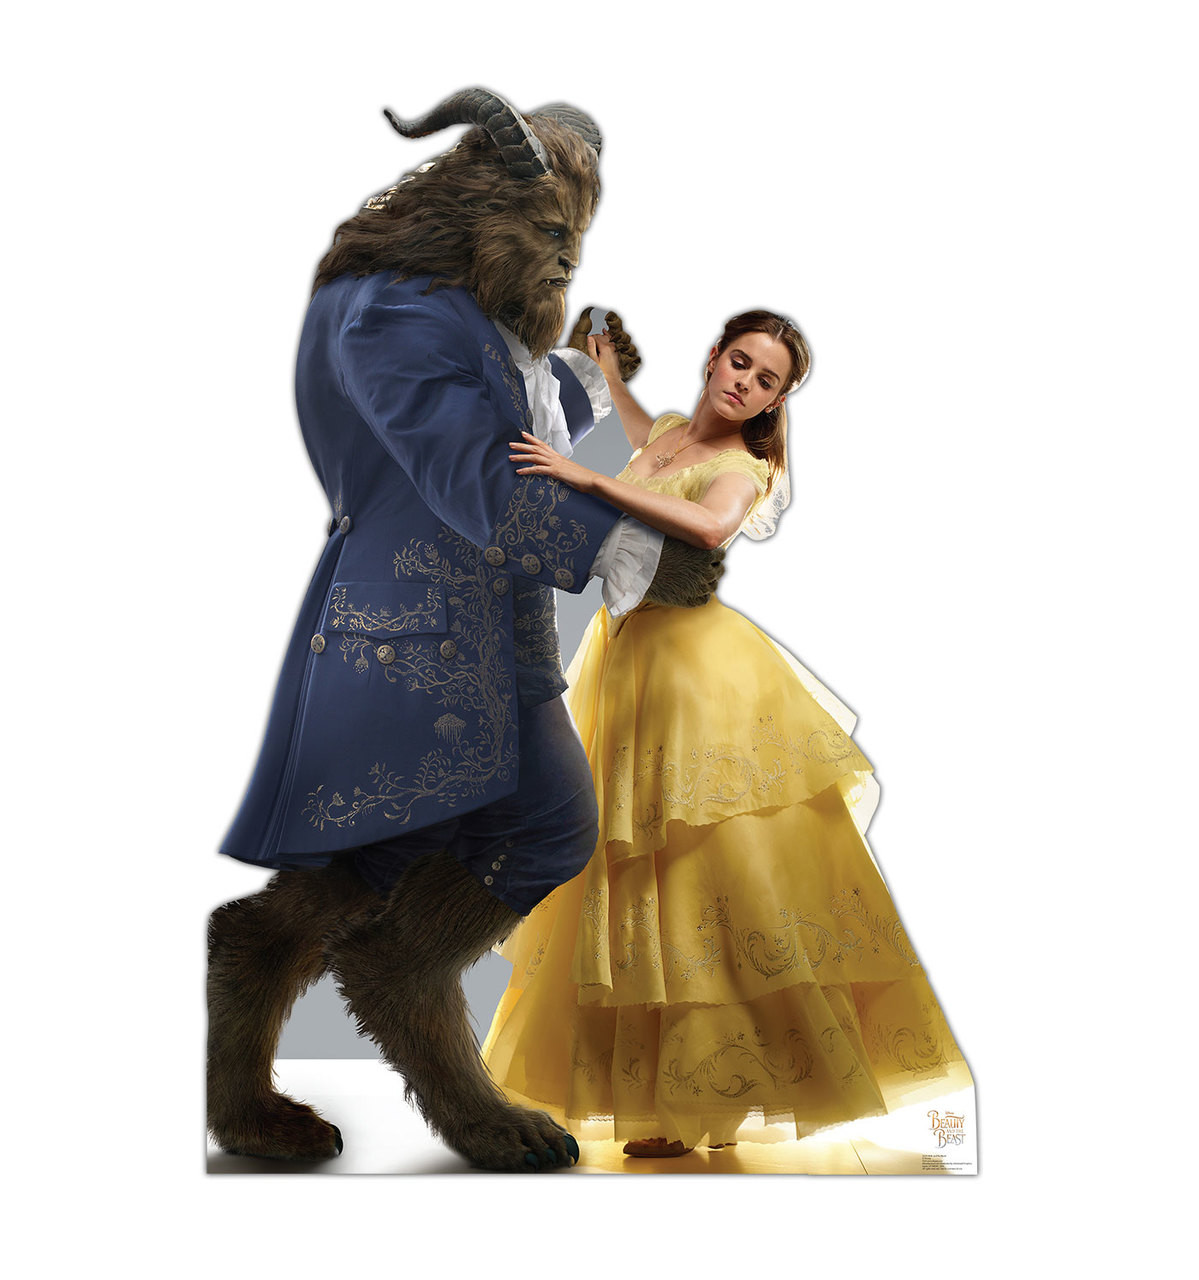 Life-size Belle and the Beast (Disney's Beauty and the Beast) Cardboard Standup 3